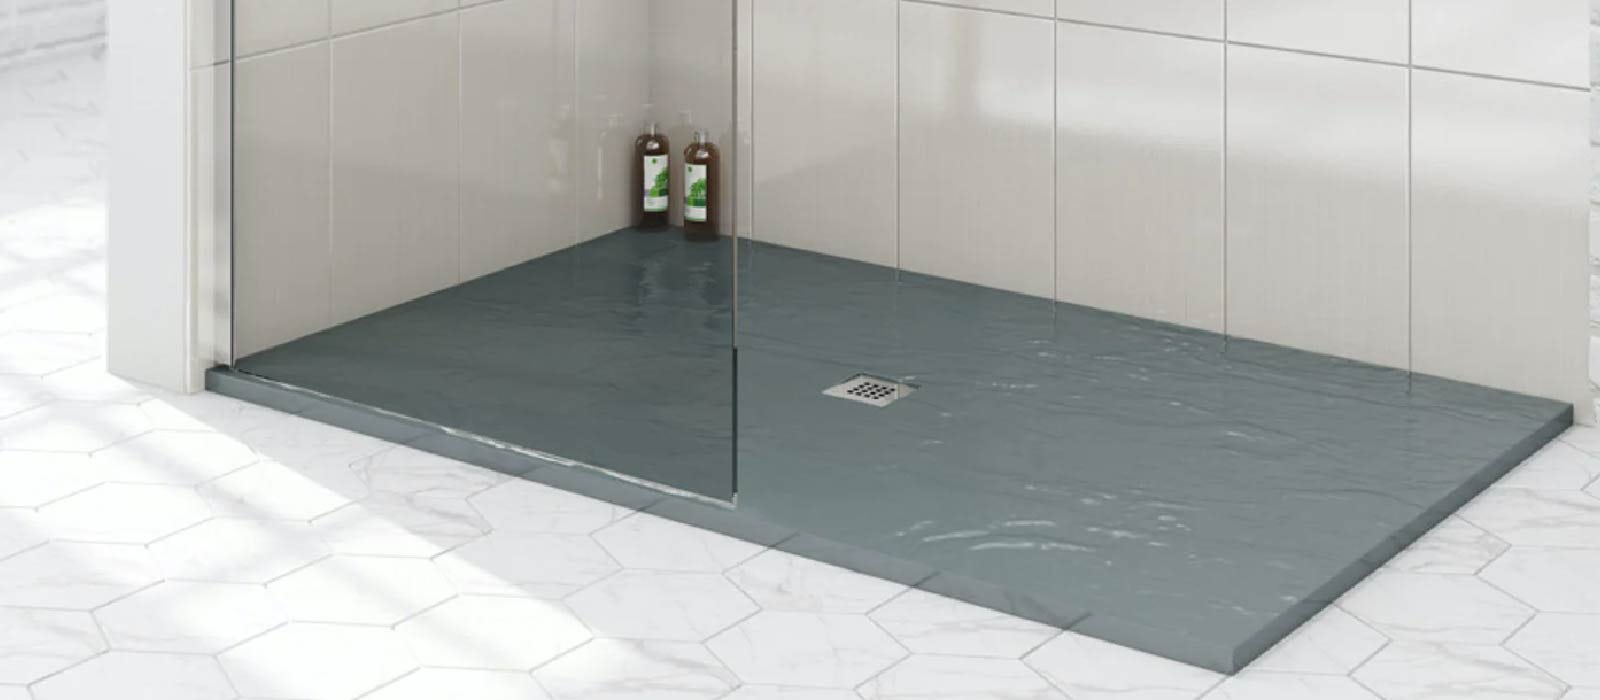 Shower Waste Trap Ing Guide, How To Tile Around A Waste Pipe Look Like